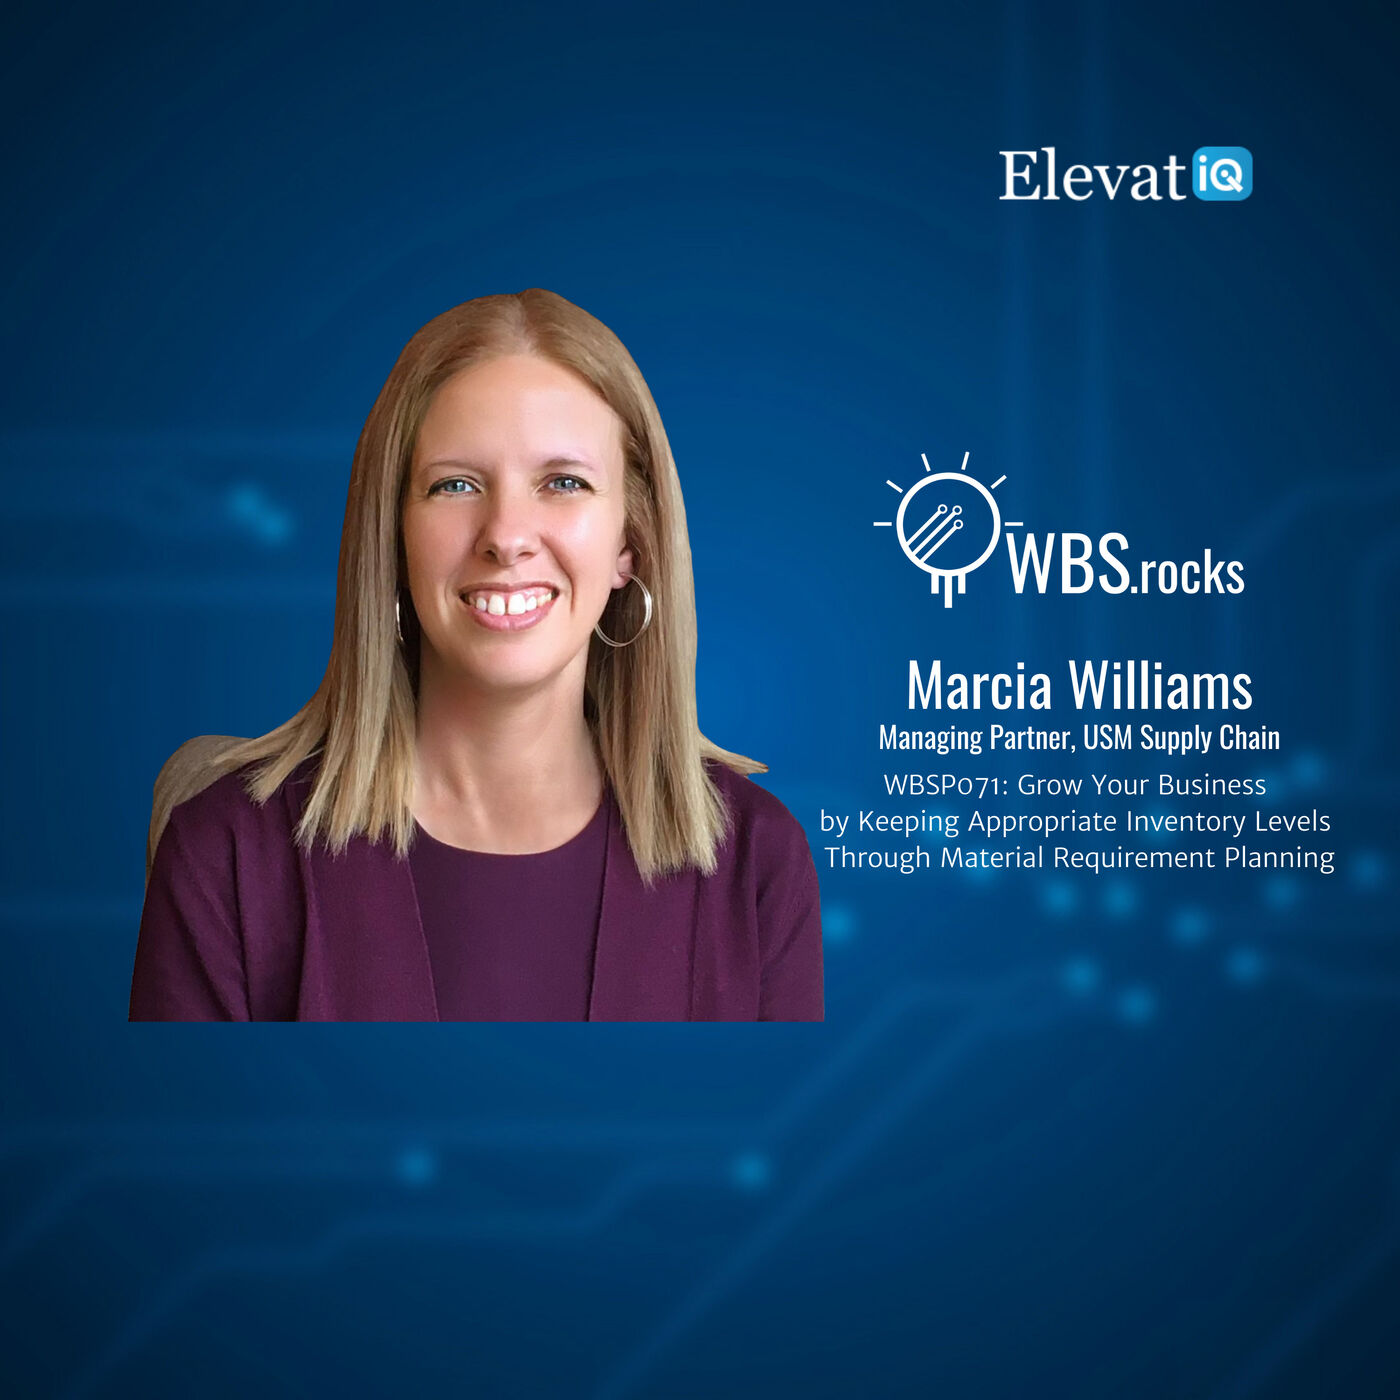 WBSP071: Grow Your Business by Keeping Appropriate Inventory Levels Through Material Requirement Planning w/ Marcia Williams